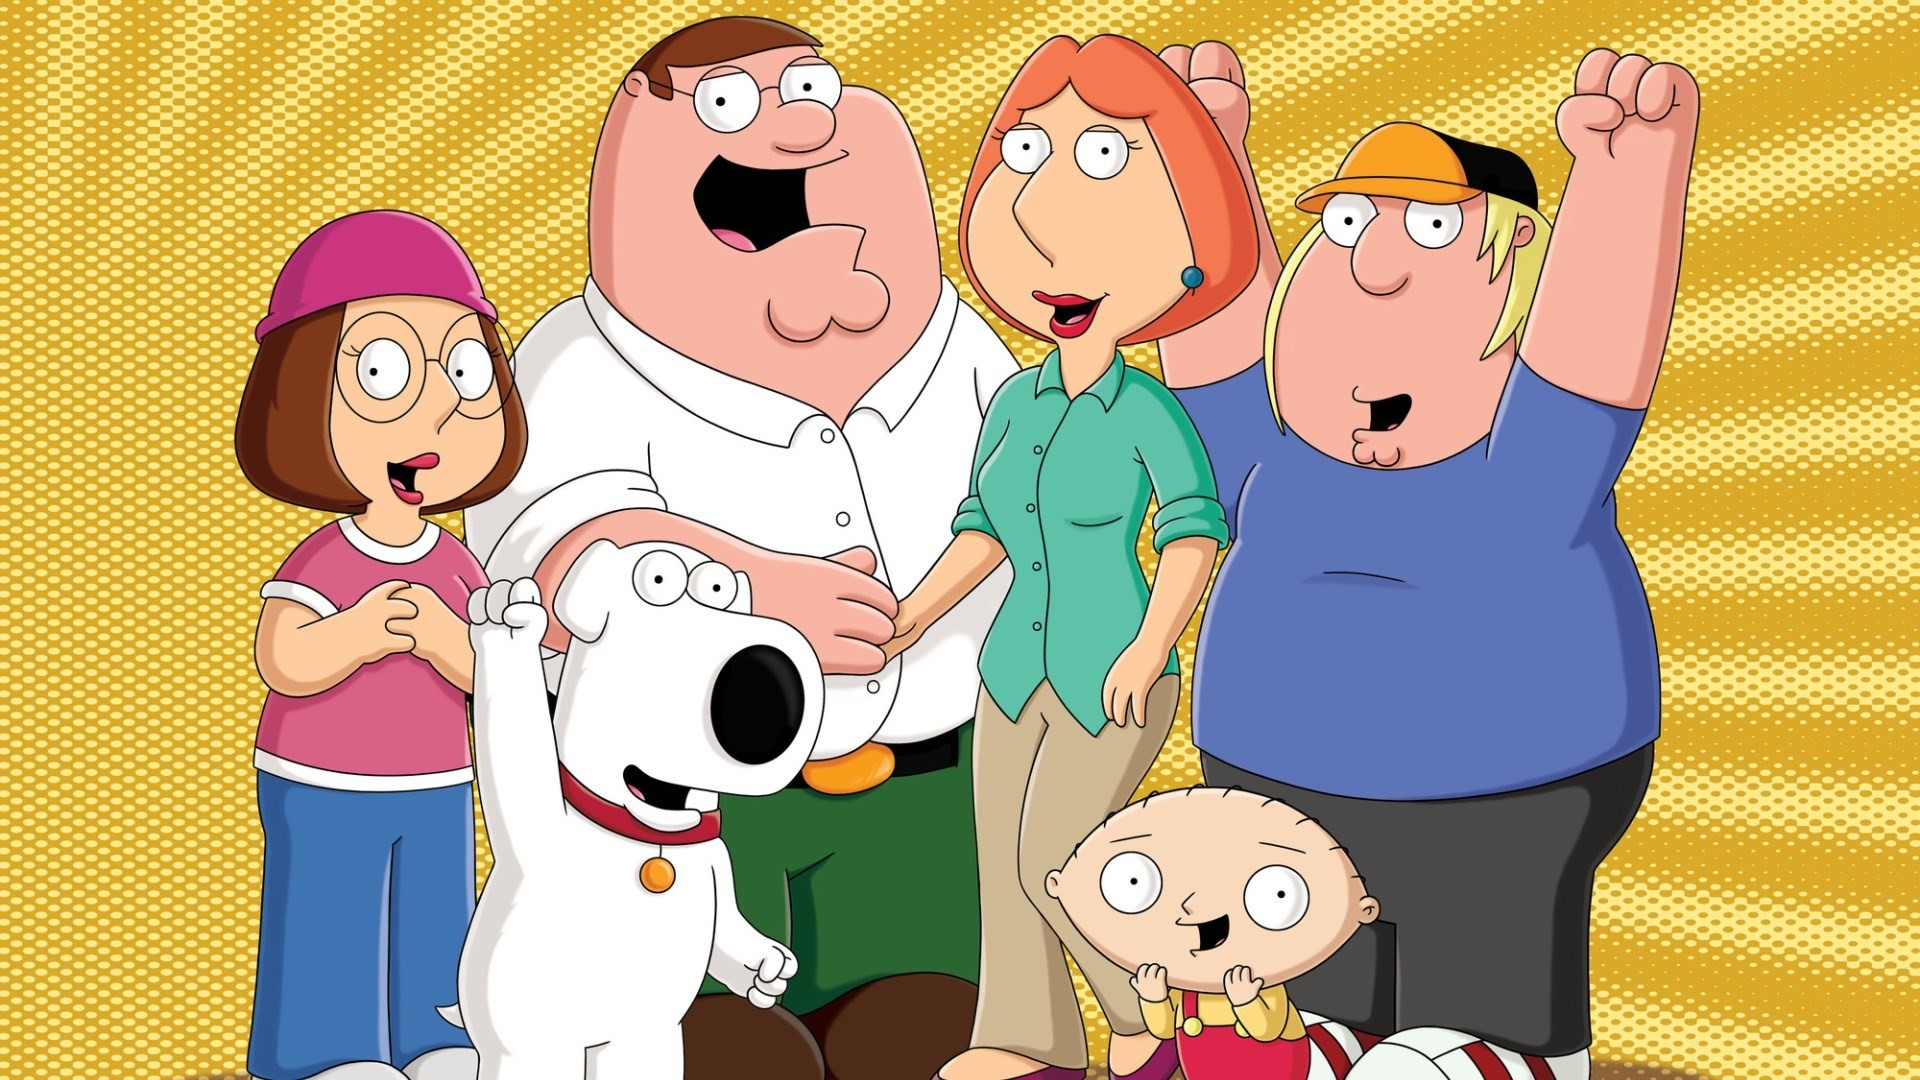 1920x1080 free screensaver wallpapers for family guy